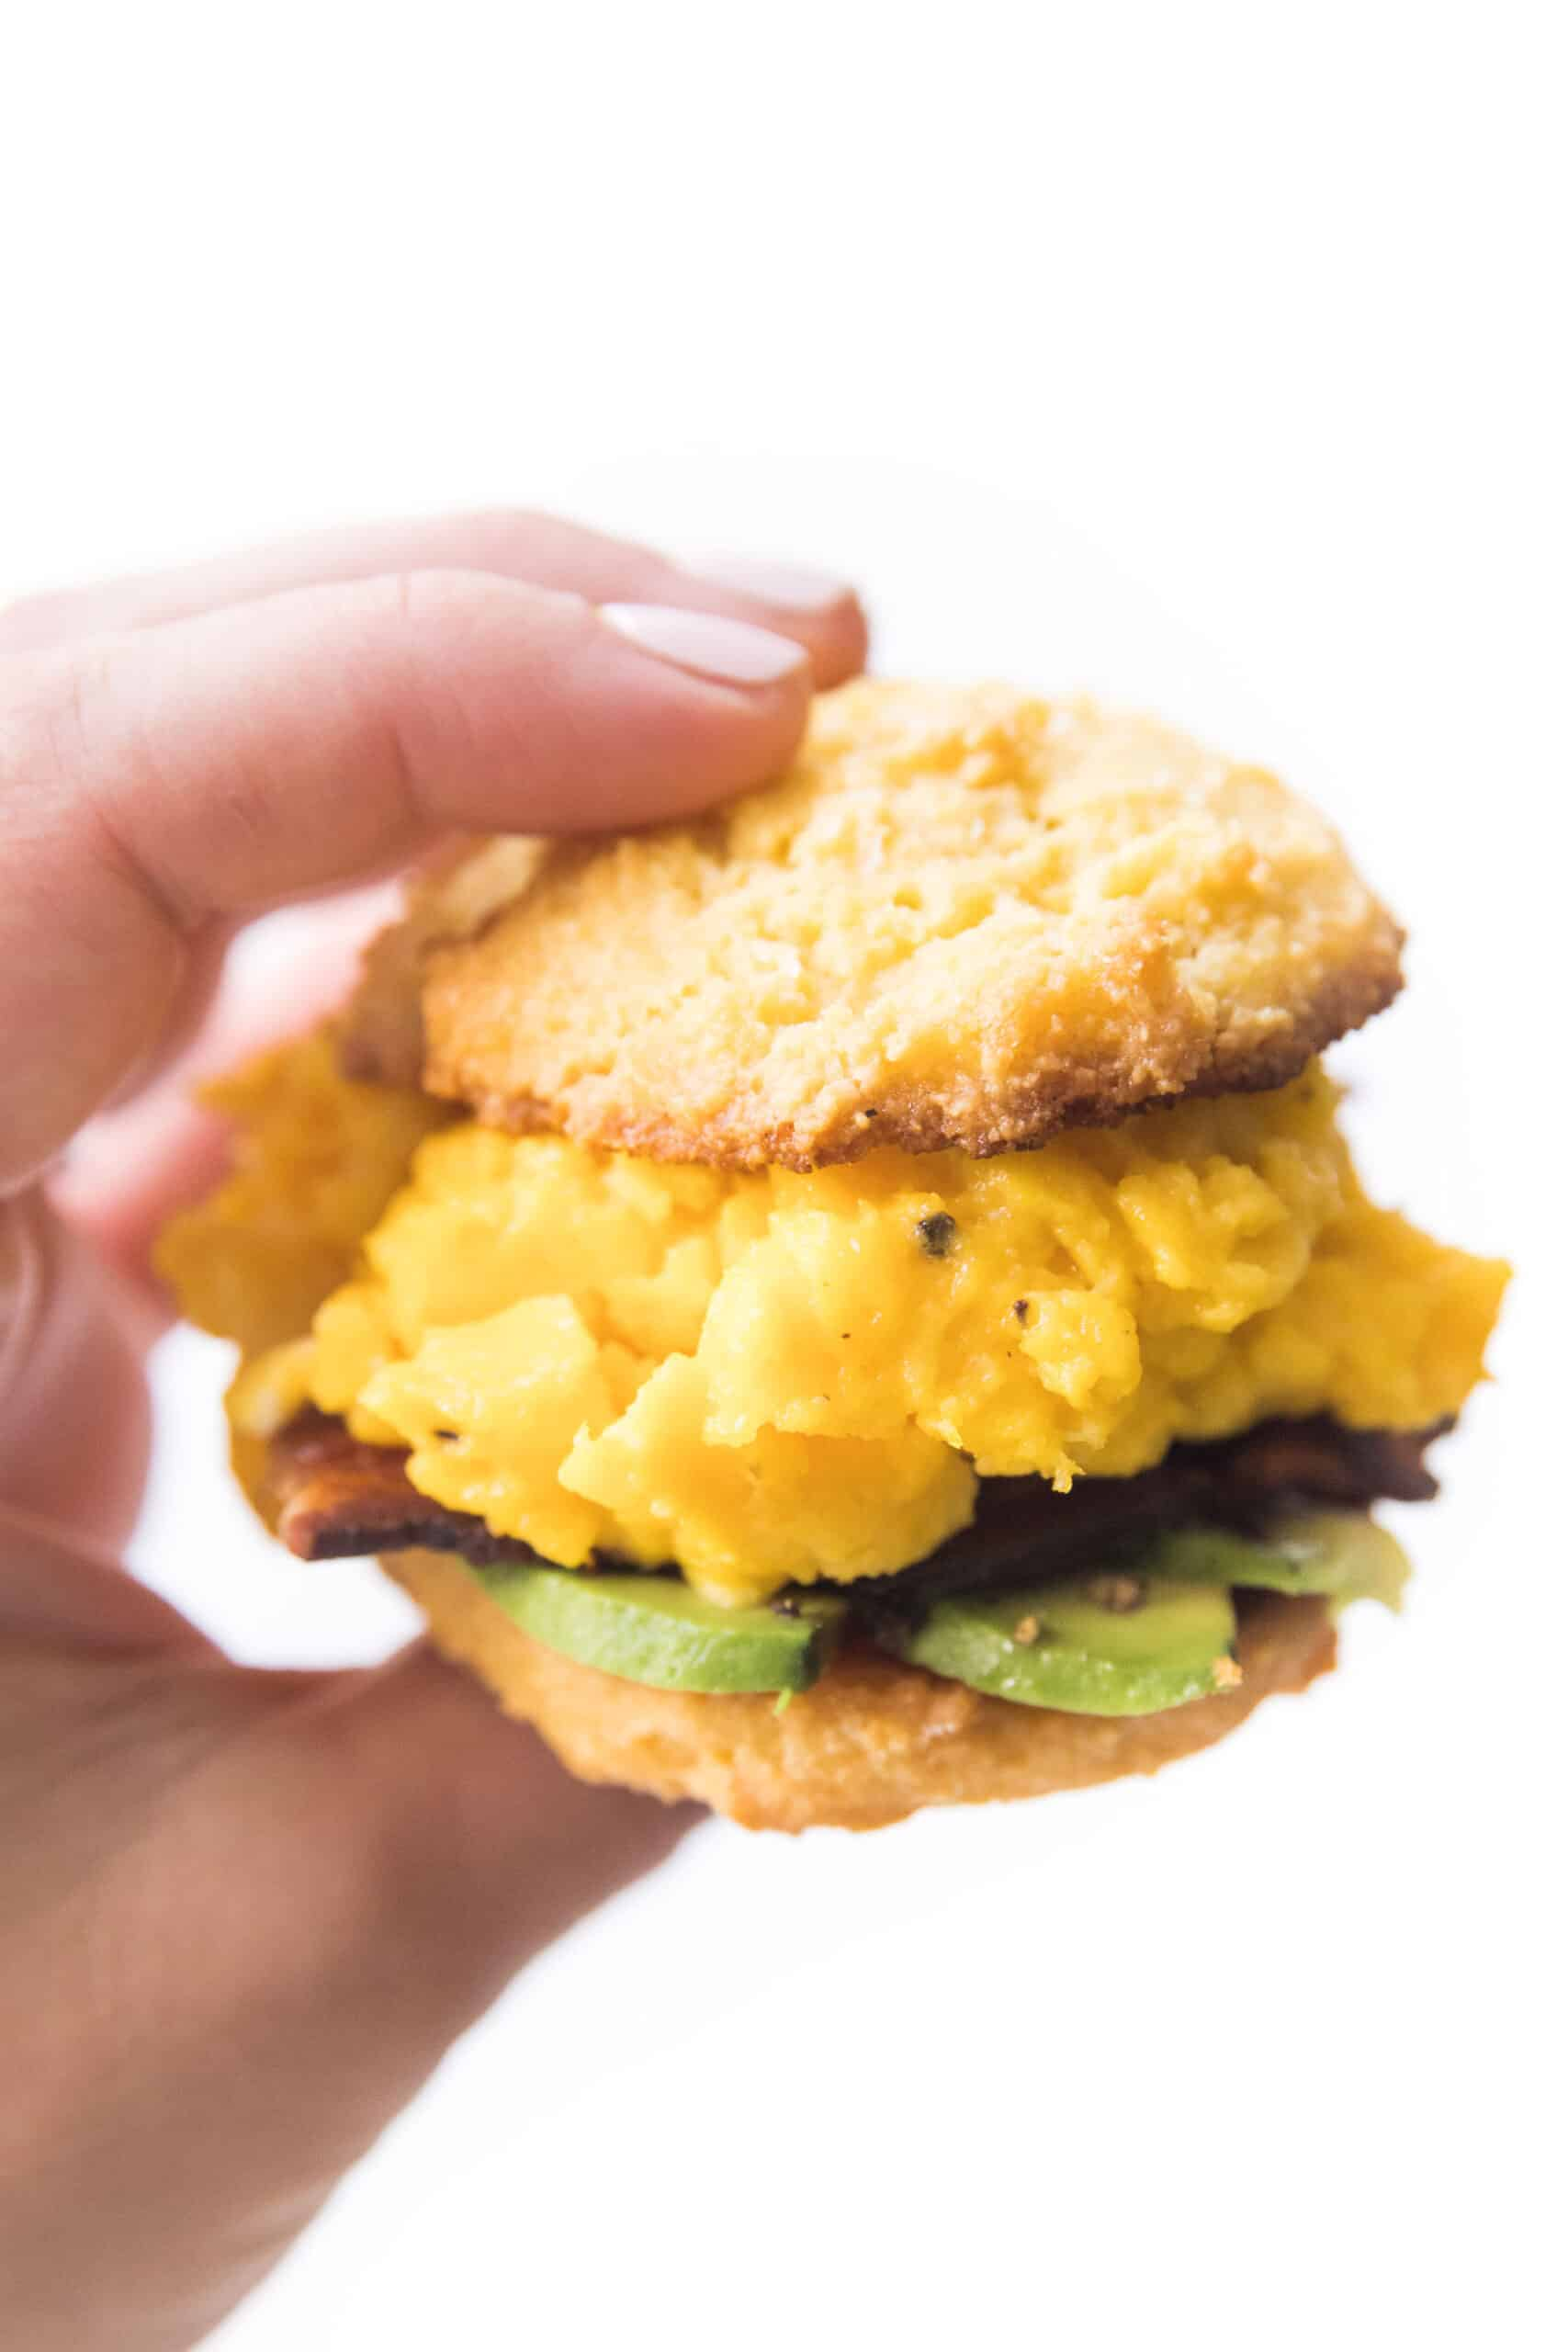 hand holding a keto biscuit breakfast sandwich with egg, bacon and avocado on a white plate and background